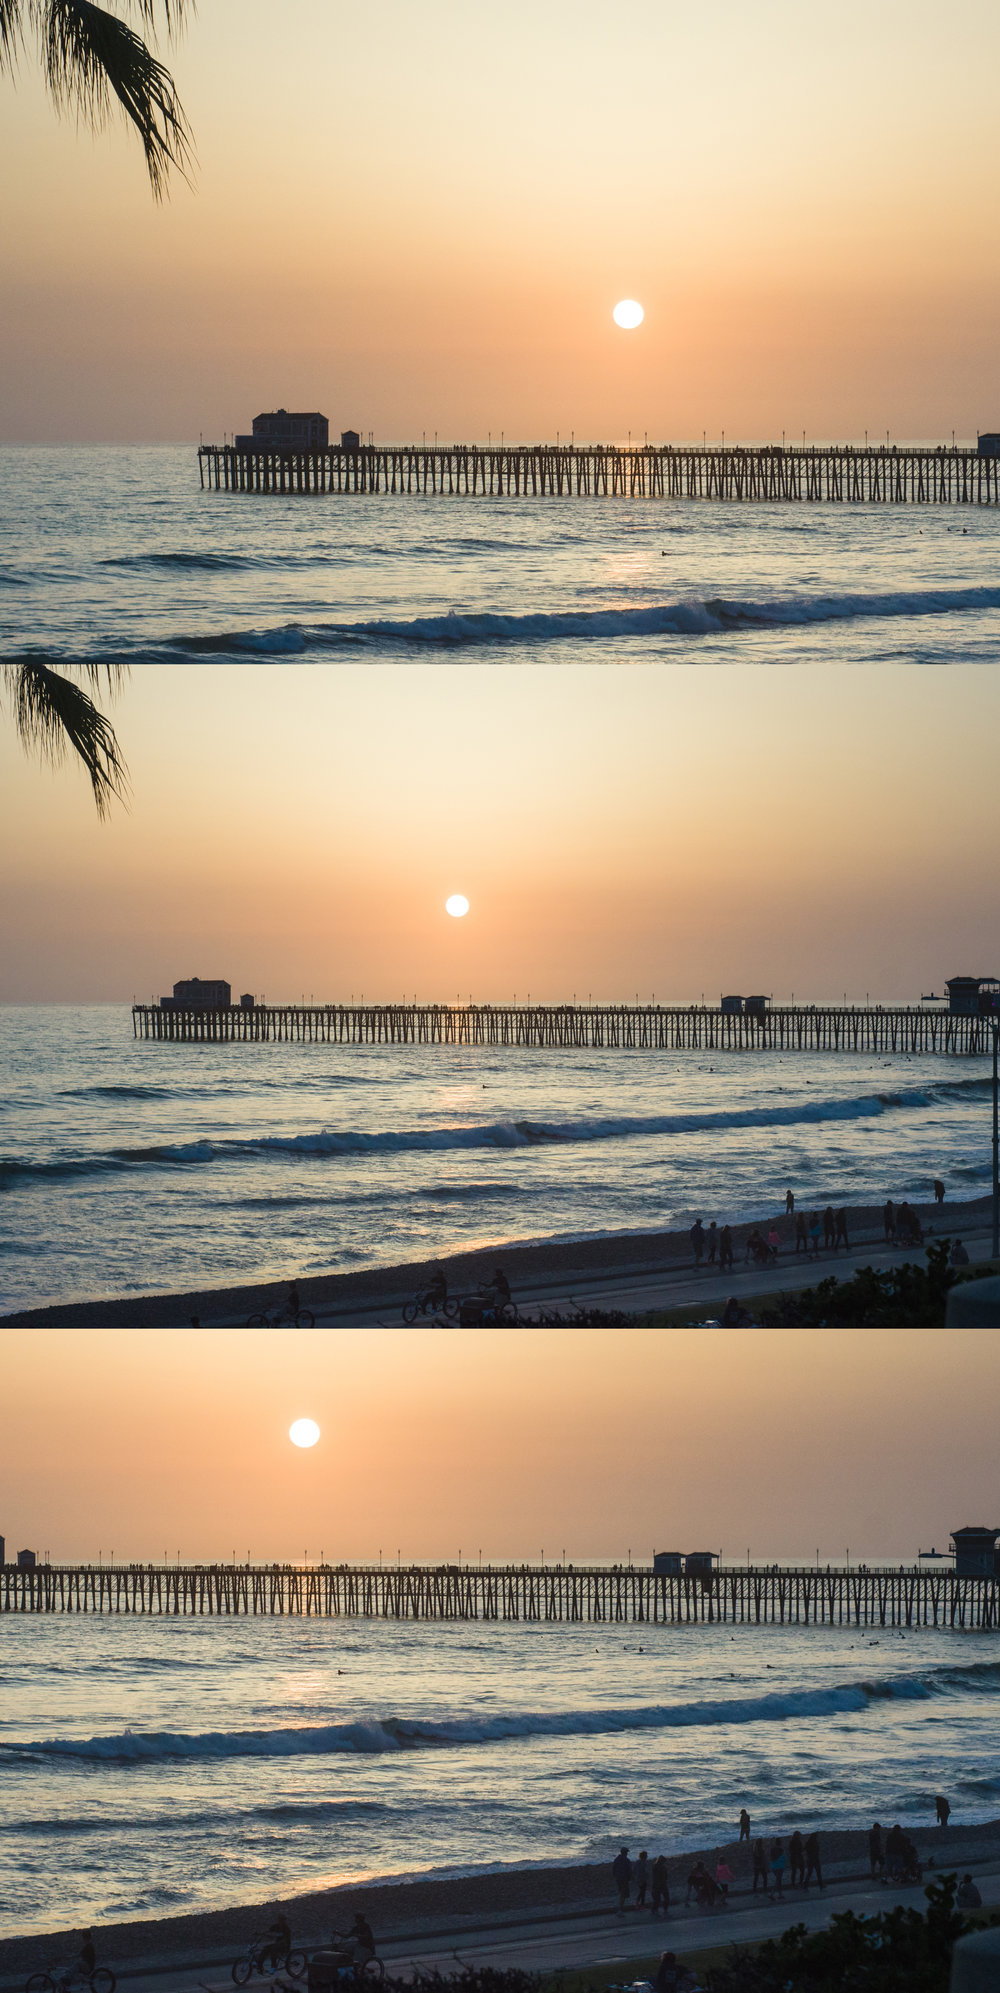 Here is a picture of the pier in Oceanside, CA. The top image has the horizon in the bottom 3rd, the bottom has it in the top 3rd, and the middle image is the original. Now look at each image and see where our eye is drawn and how that effects what the image is about.